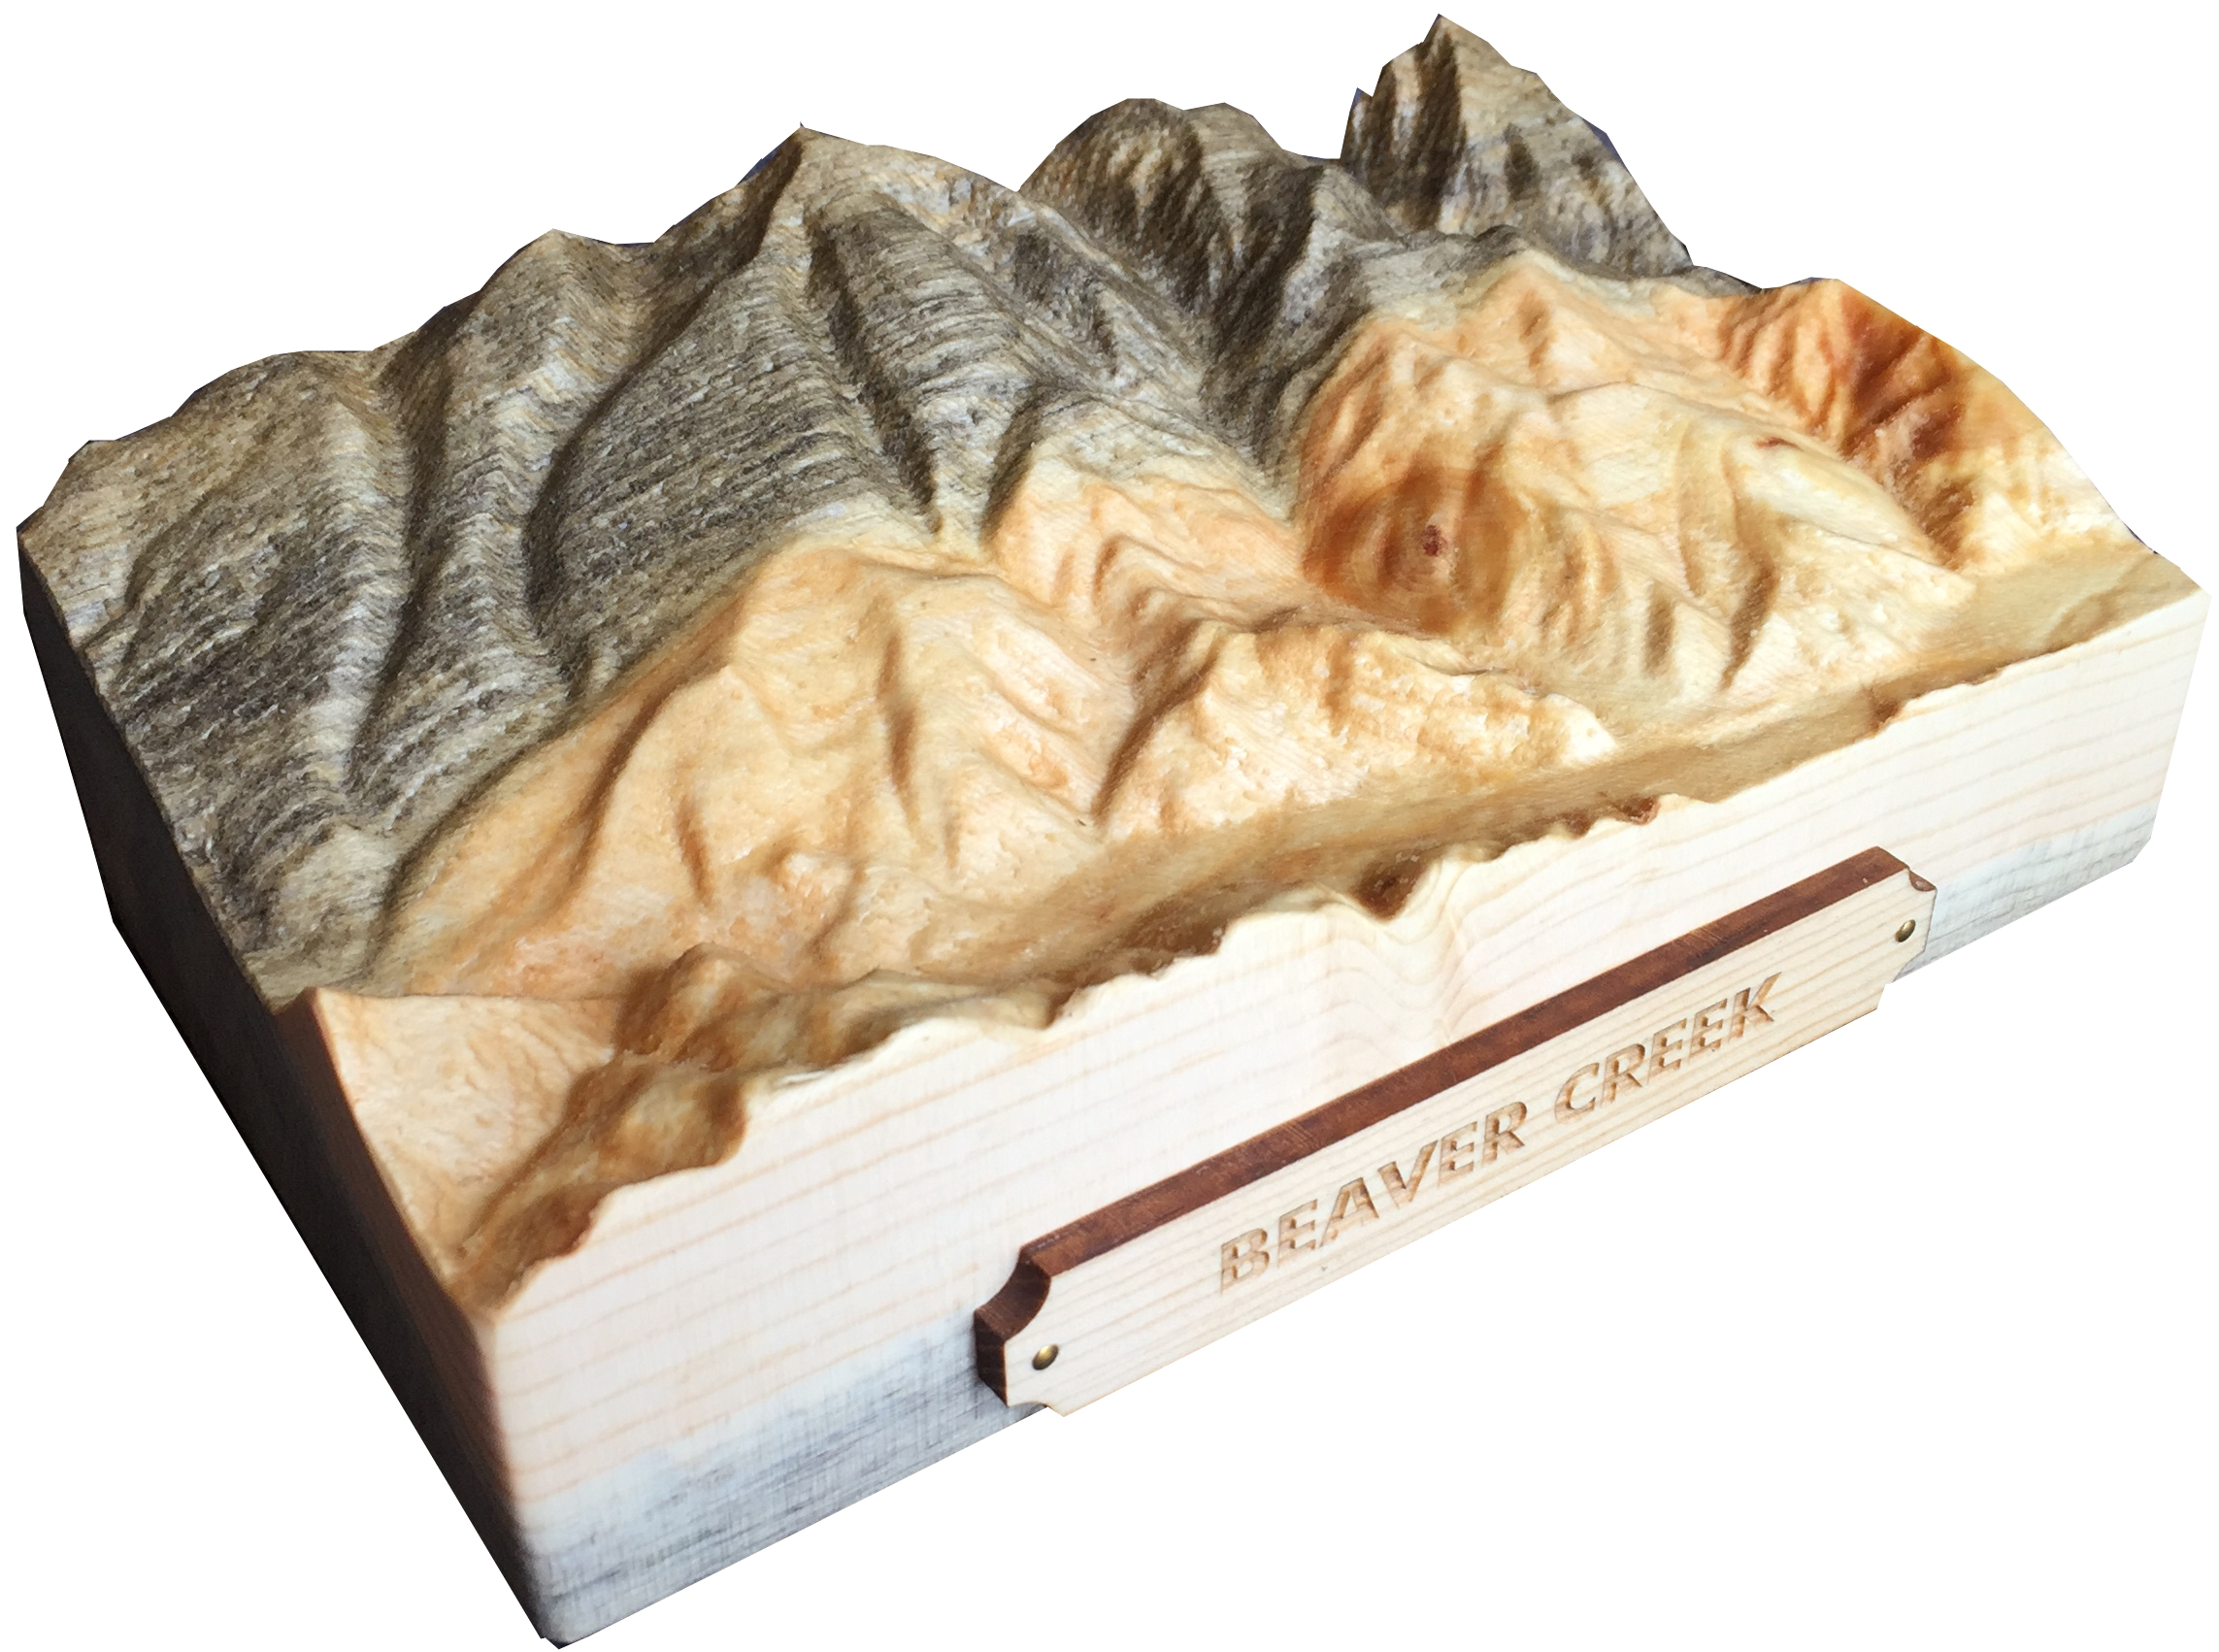 Beaver Creek Gift Carving.jpg